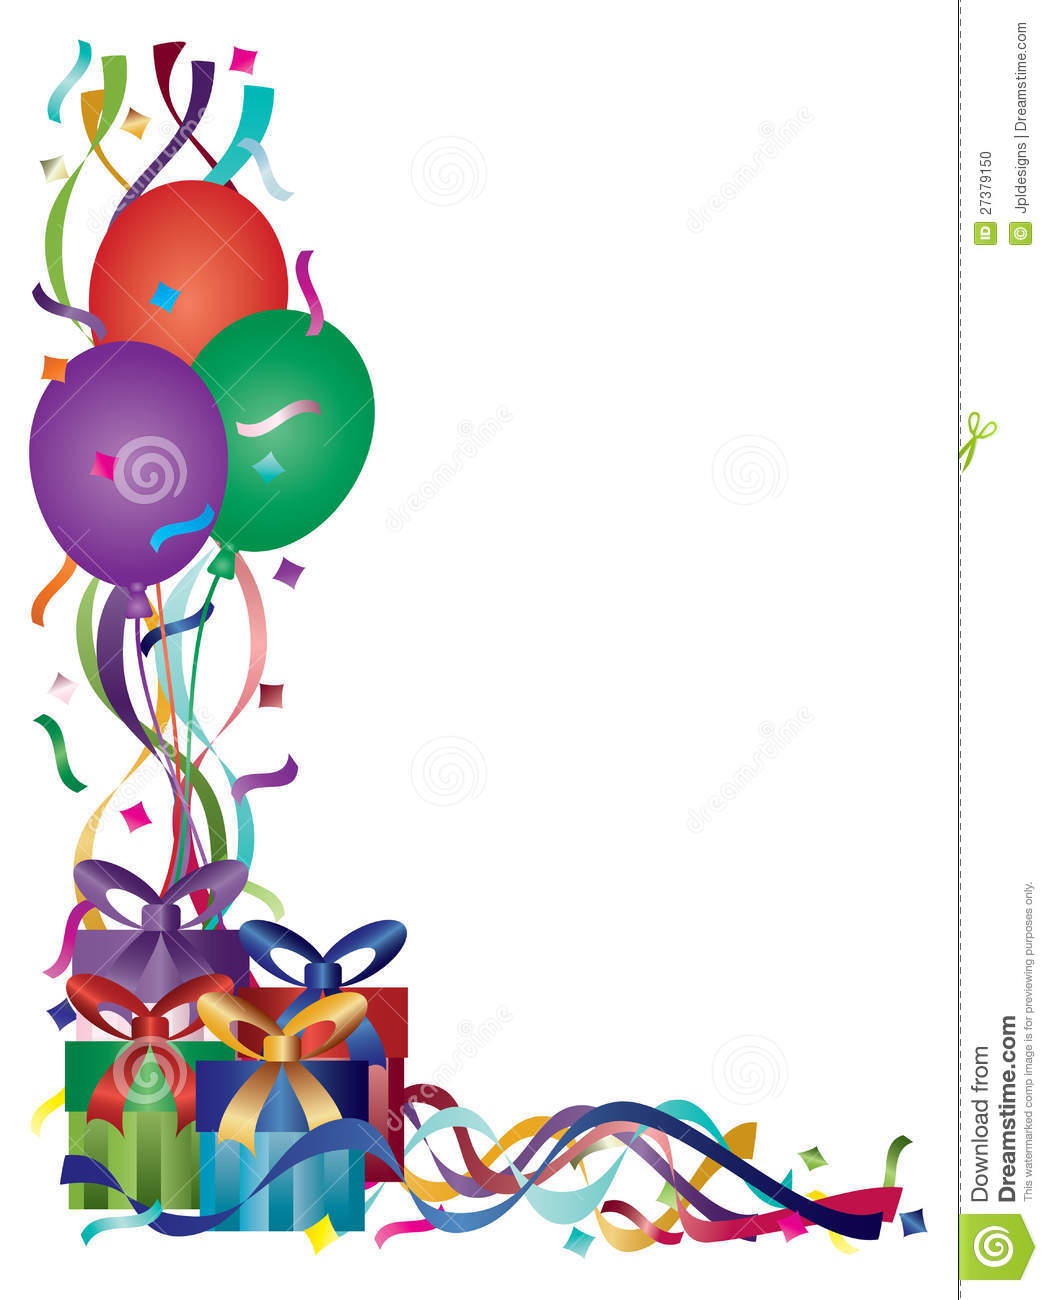 Birthday Borders Panda Free Images Clipart